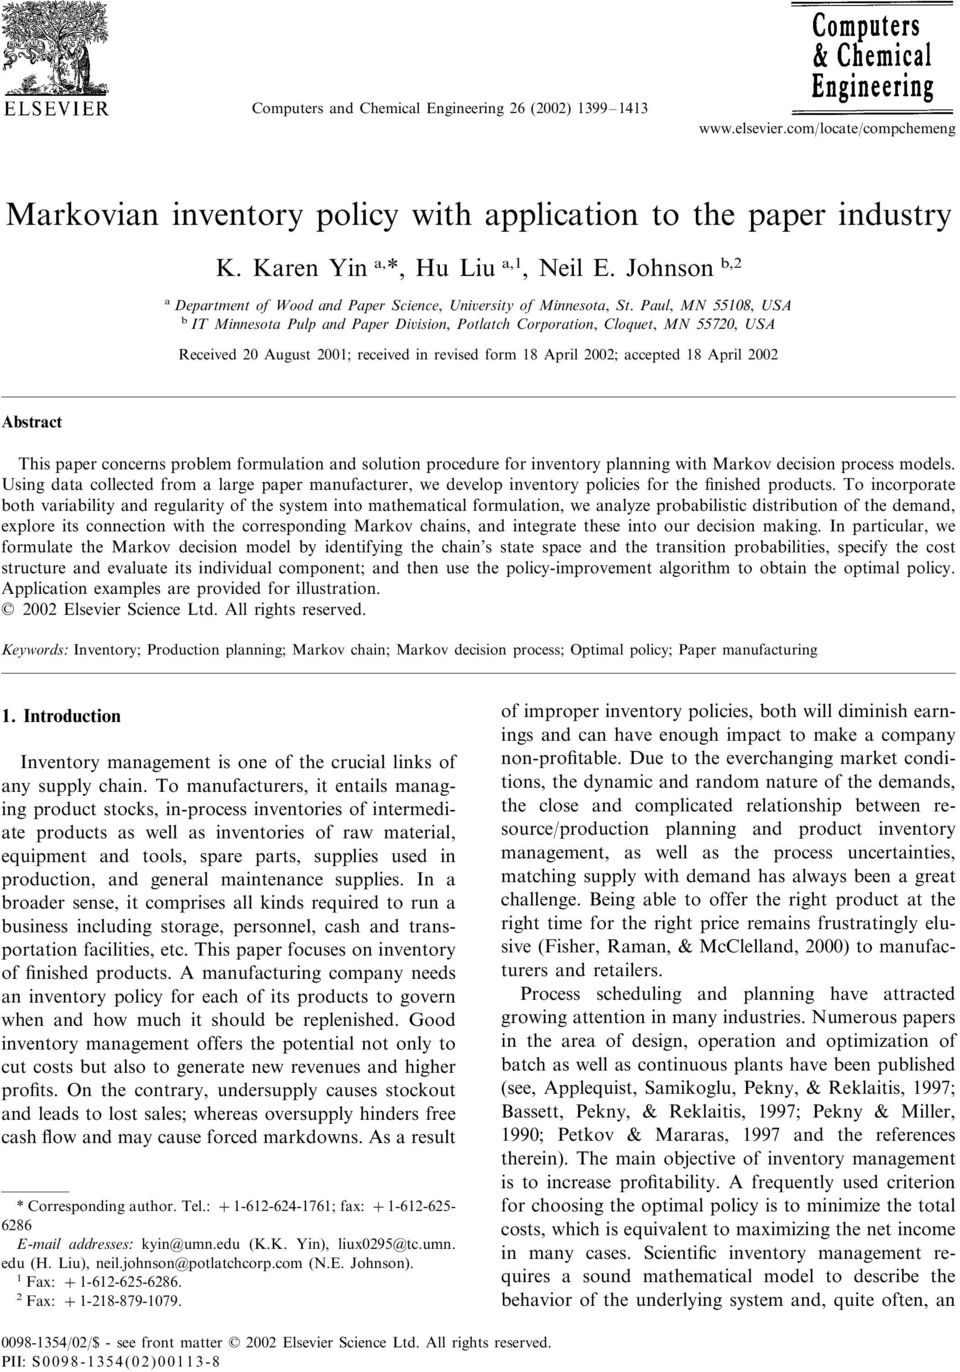 Paul, MN 55108, USA b IT Minnesota Pulp and Paper Diision, Potlatch Corporation, Cloquet, MN 55720, USA Received 20 August 2001; received in revised for 18 April 2002; accepted 18 April 2002 Abstract